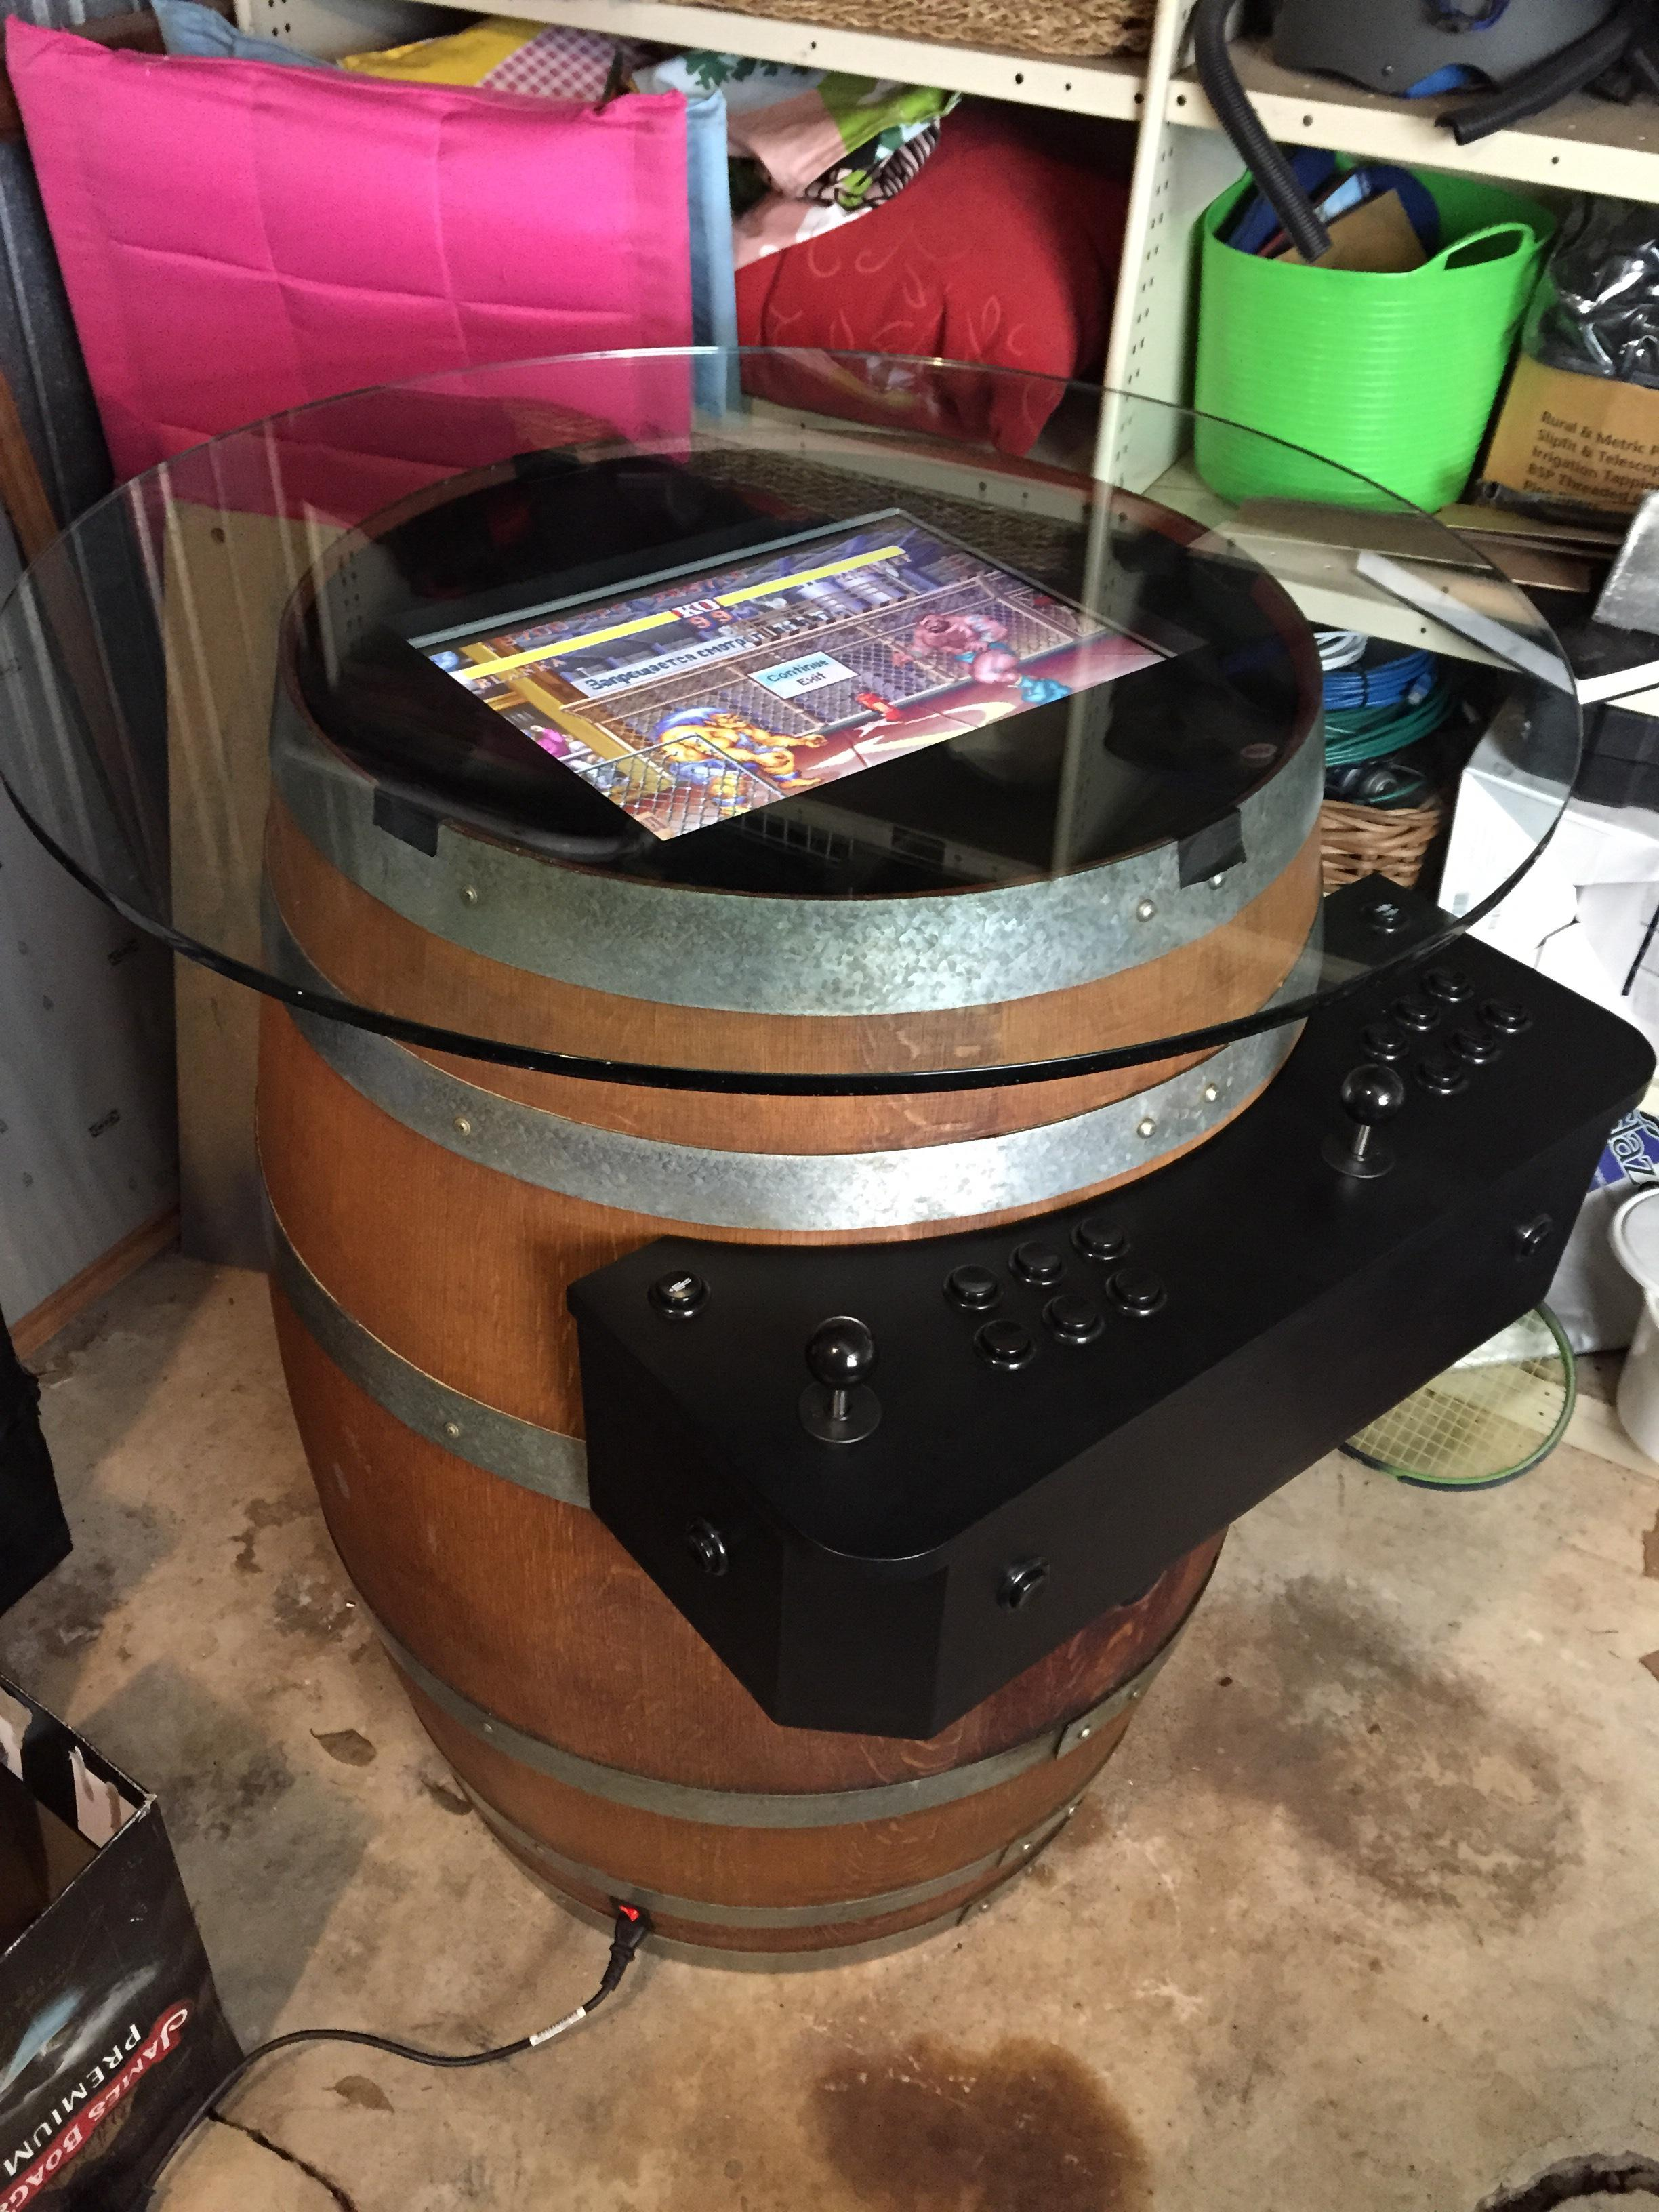 Barrel o' Fun: Arcade machine barrel table - Raspberry Pi